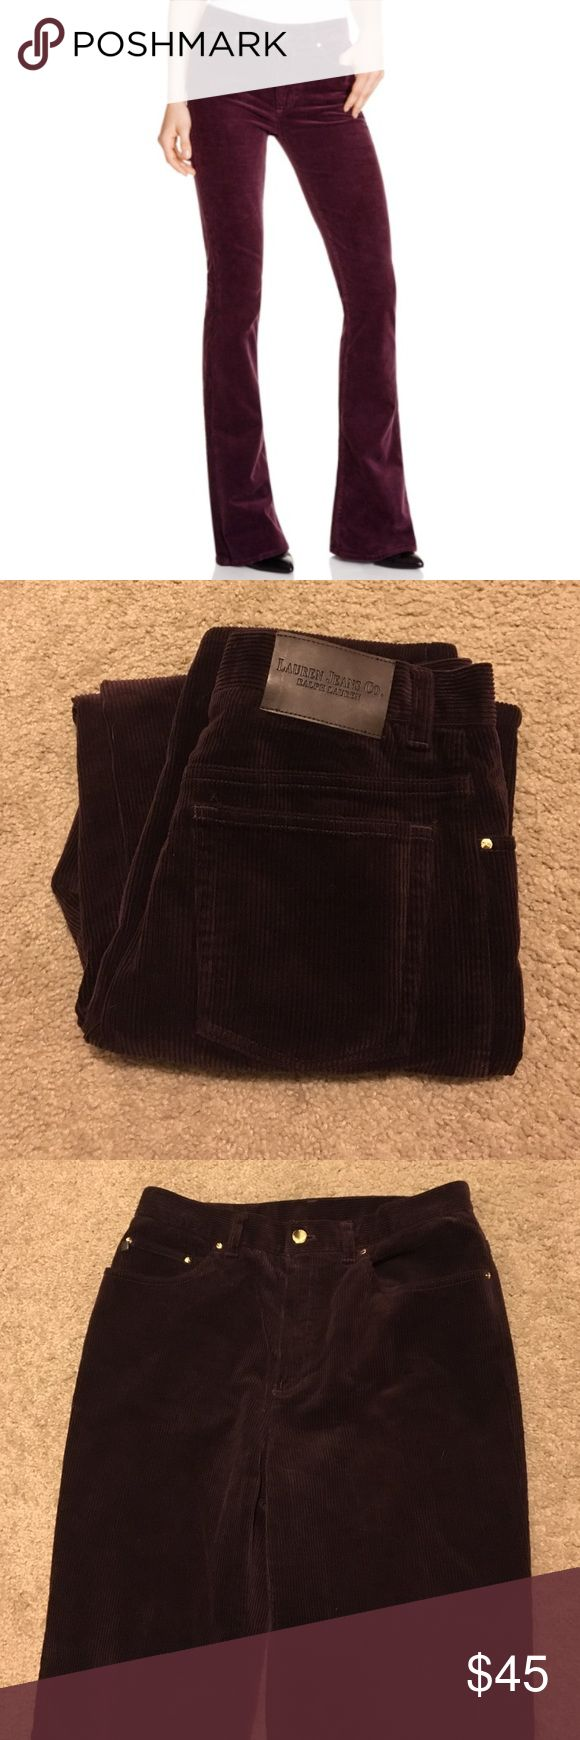 """Ralph Lauren fig plum boot cut corduroys Ralph Lauren """"Lauren Jean Co"""" corduroy cords pants size 8. Boot cut, 7.5"""" leg opening. Beautiful dark plum/fig (dark plum purple/brown) color with gold hardware. Front and back pockets and zipper. Hips measure 14.5"""" (top of pants.) Inseam 30"""". No wear on bottoms. Like new condition! Top picture for style suggestion only! See bottom three pictures for actual pants. The color is much more vibrant in person. Ralph Lauren Pants"""